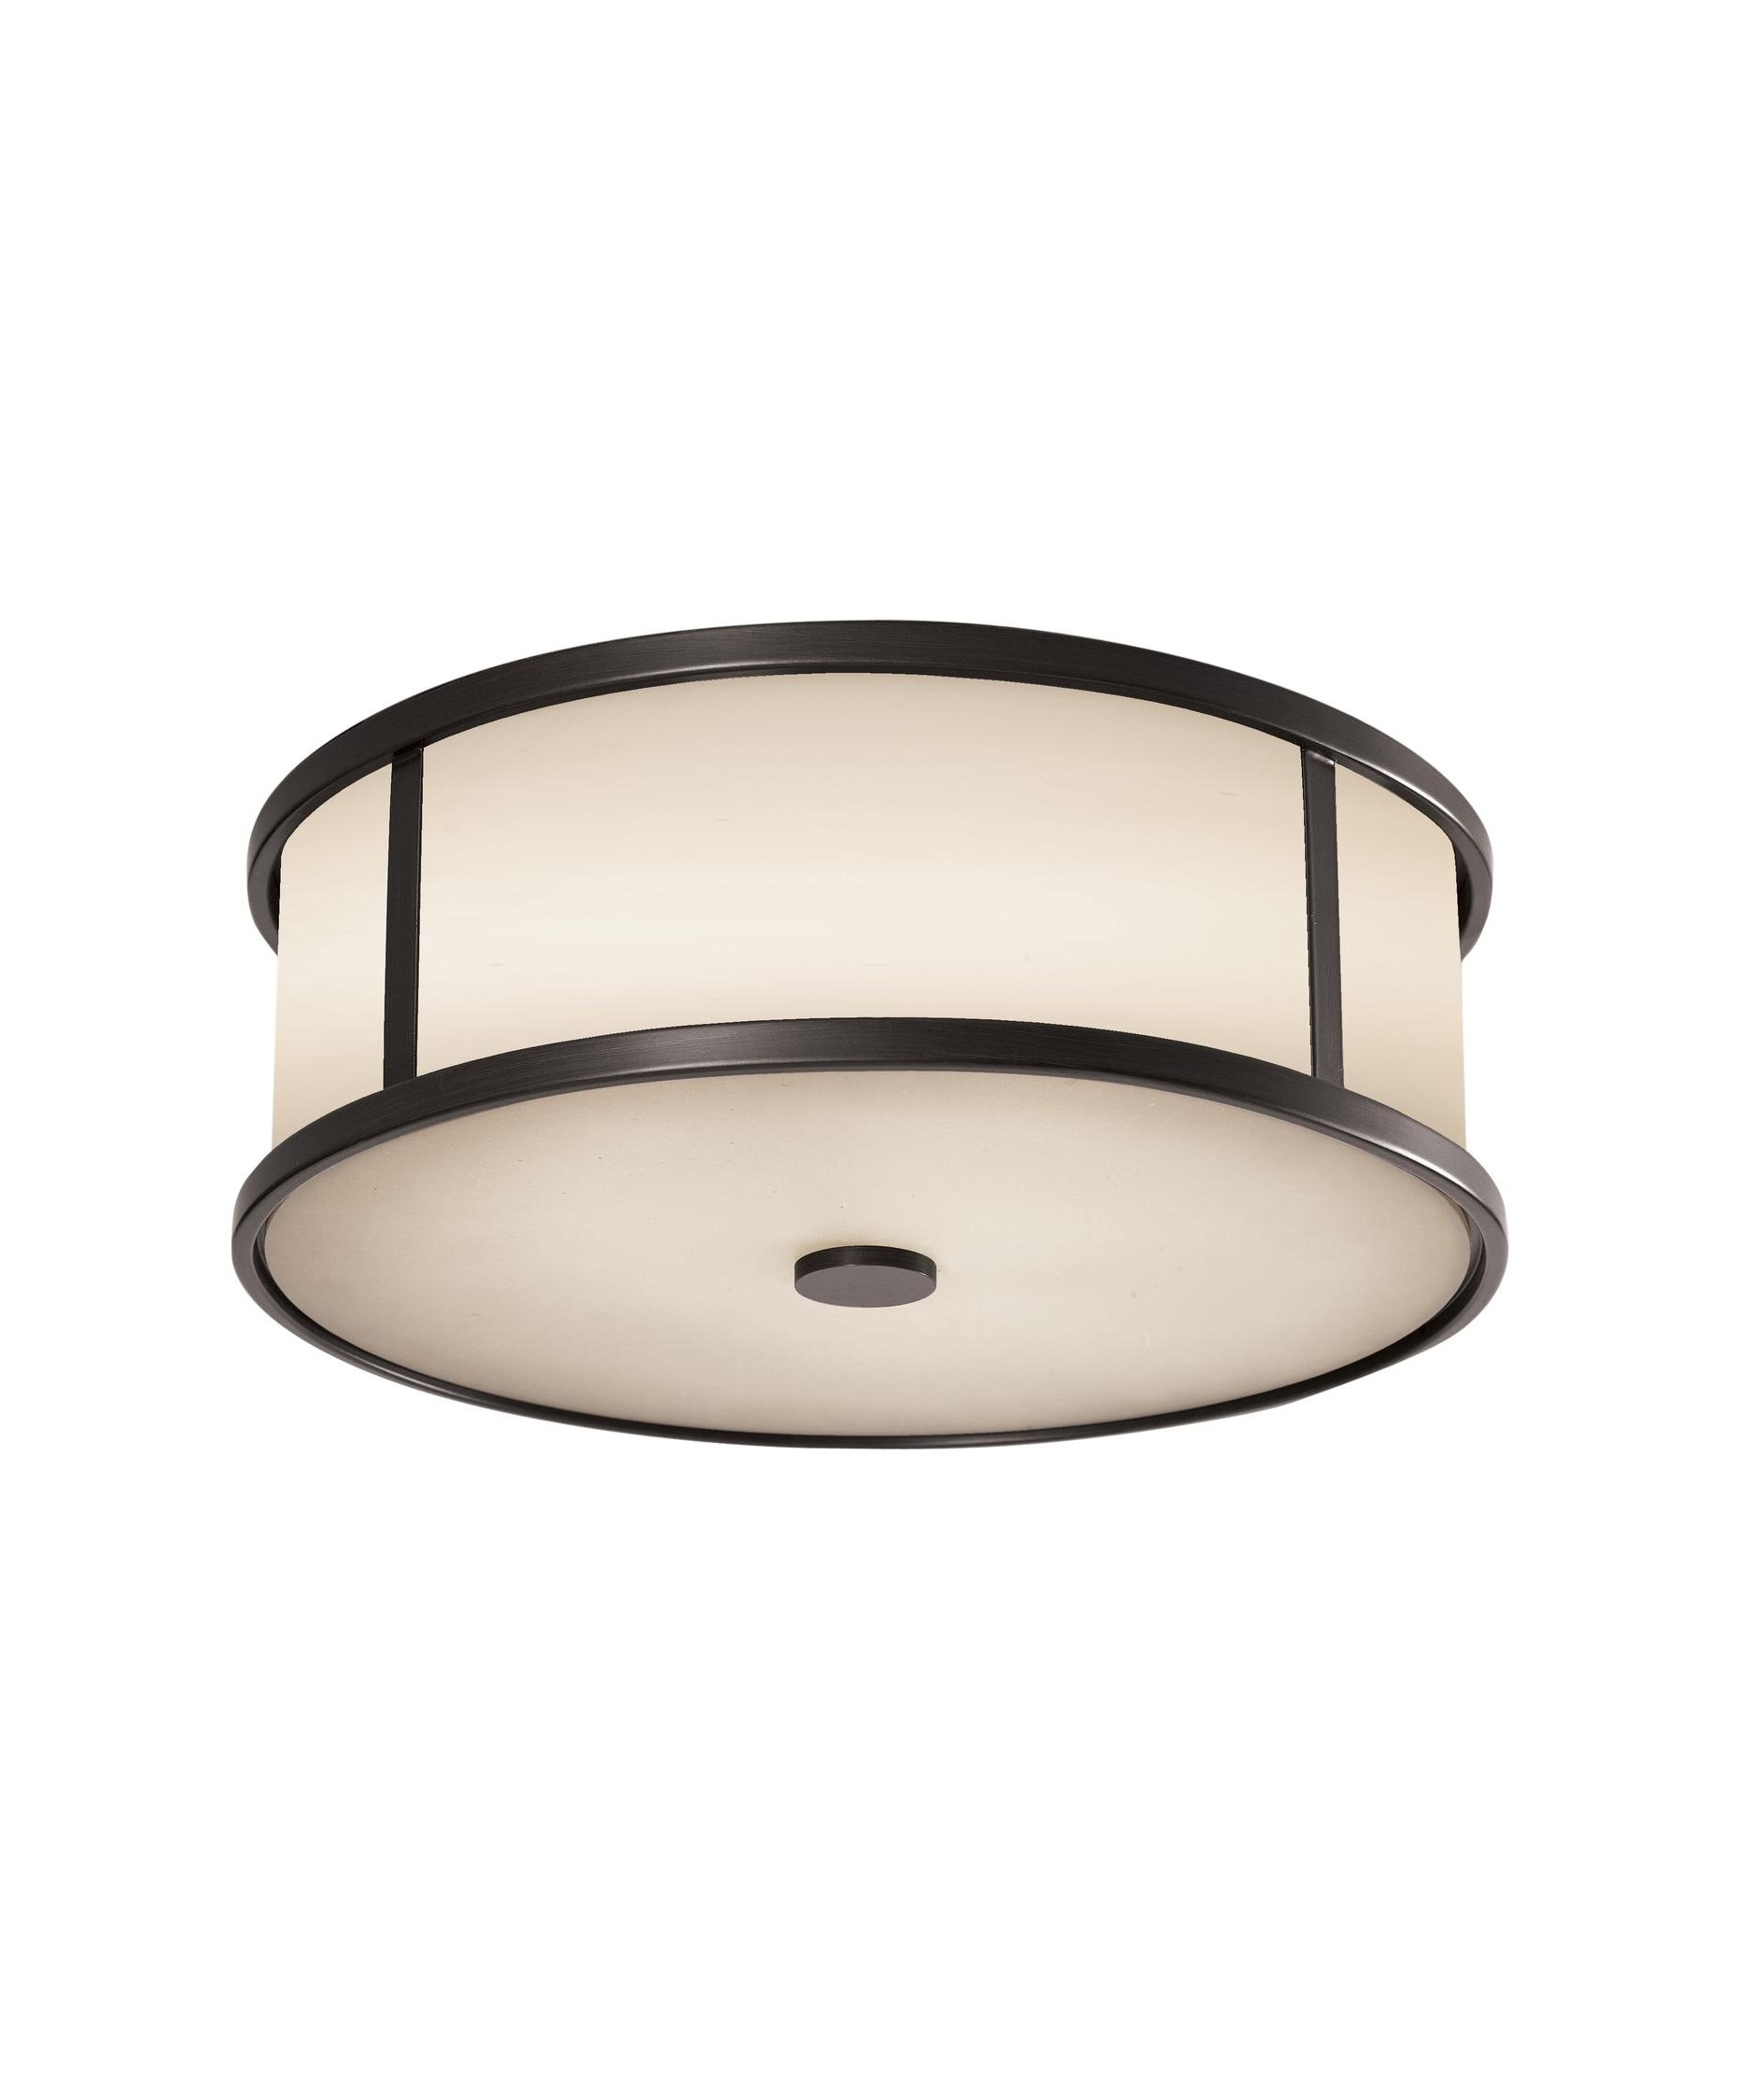 Murray Feiss Ol7613 Dakota 14 Inch Wide 3 Light Outdoor Flush Mount Within Most Up To Date Outdoor Ceiling Mount Led Lights (View 10 of 20)